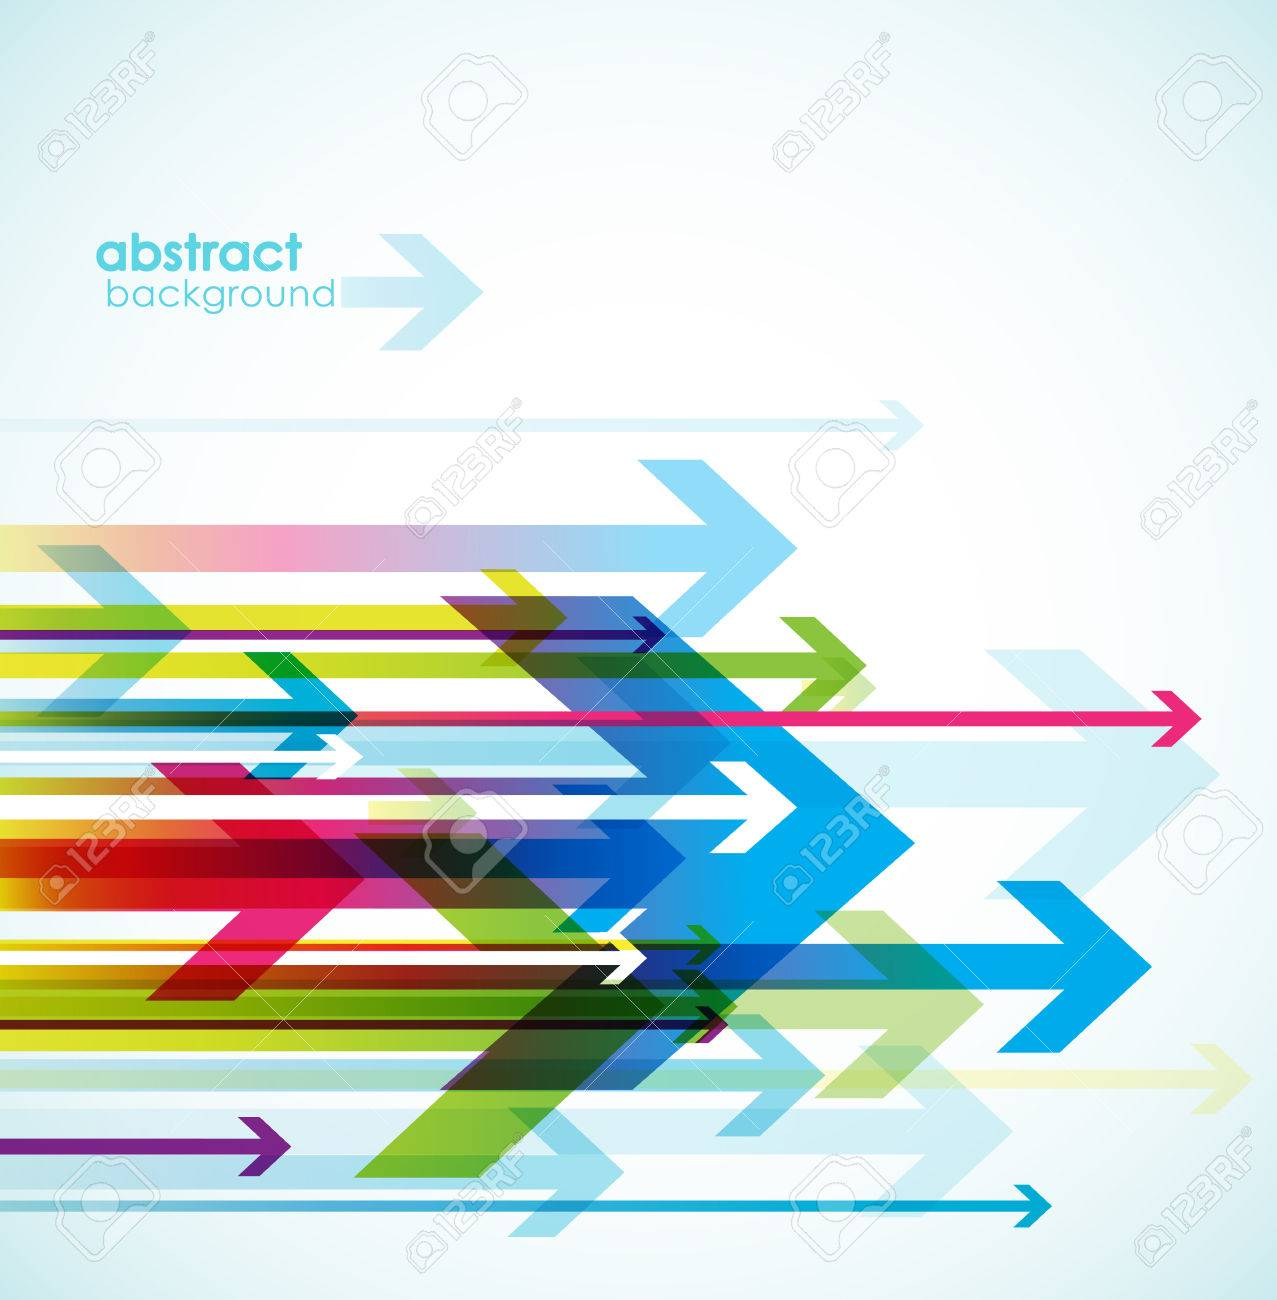 Abstract colored background with arrows. - 34371986